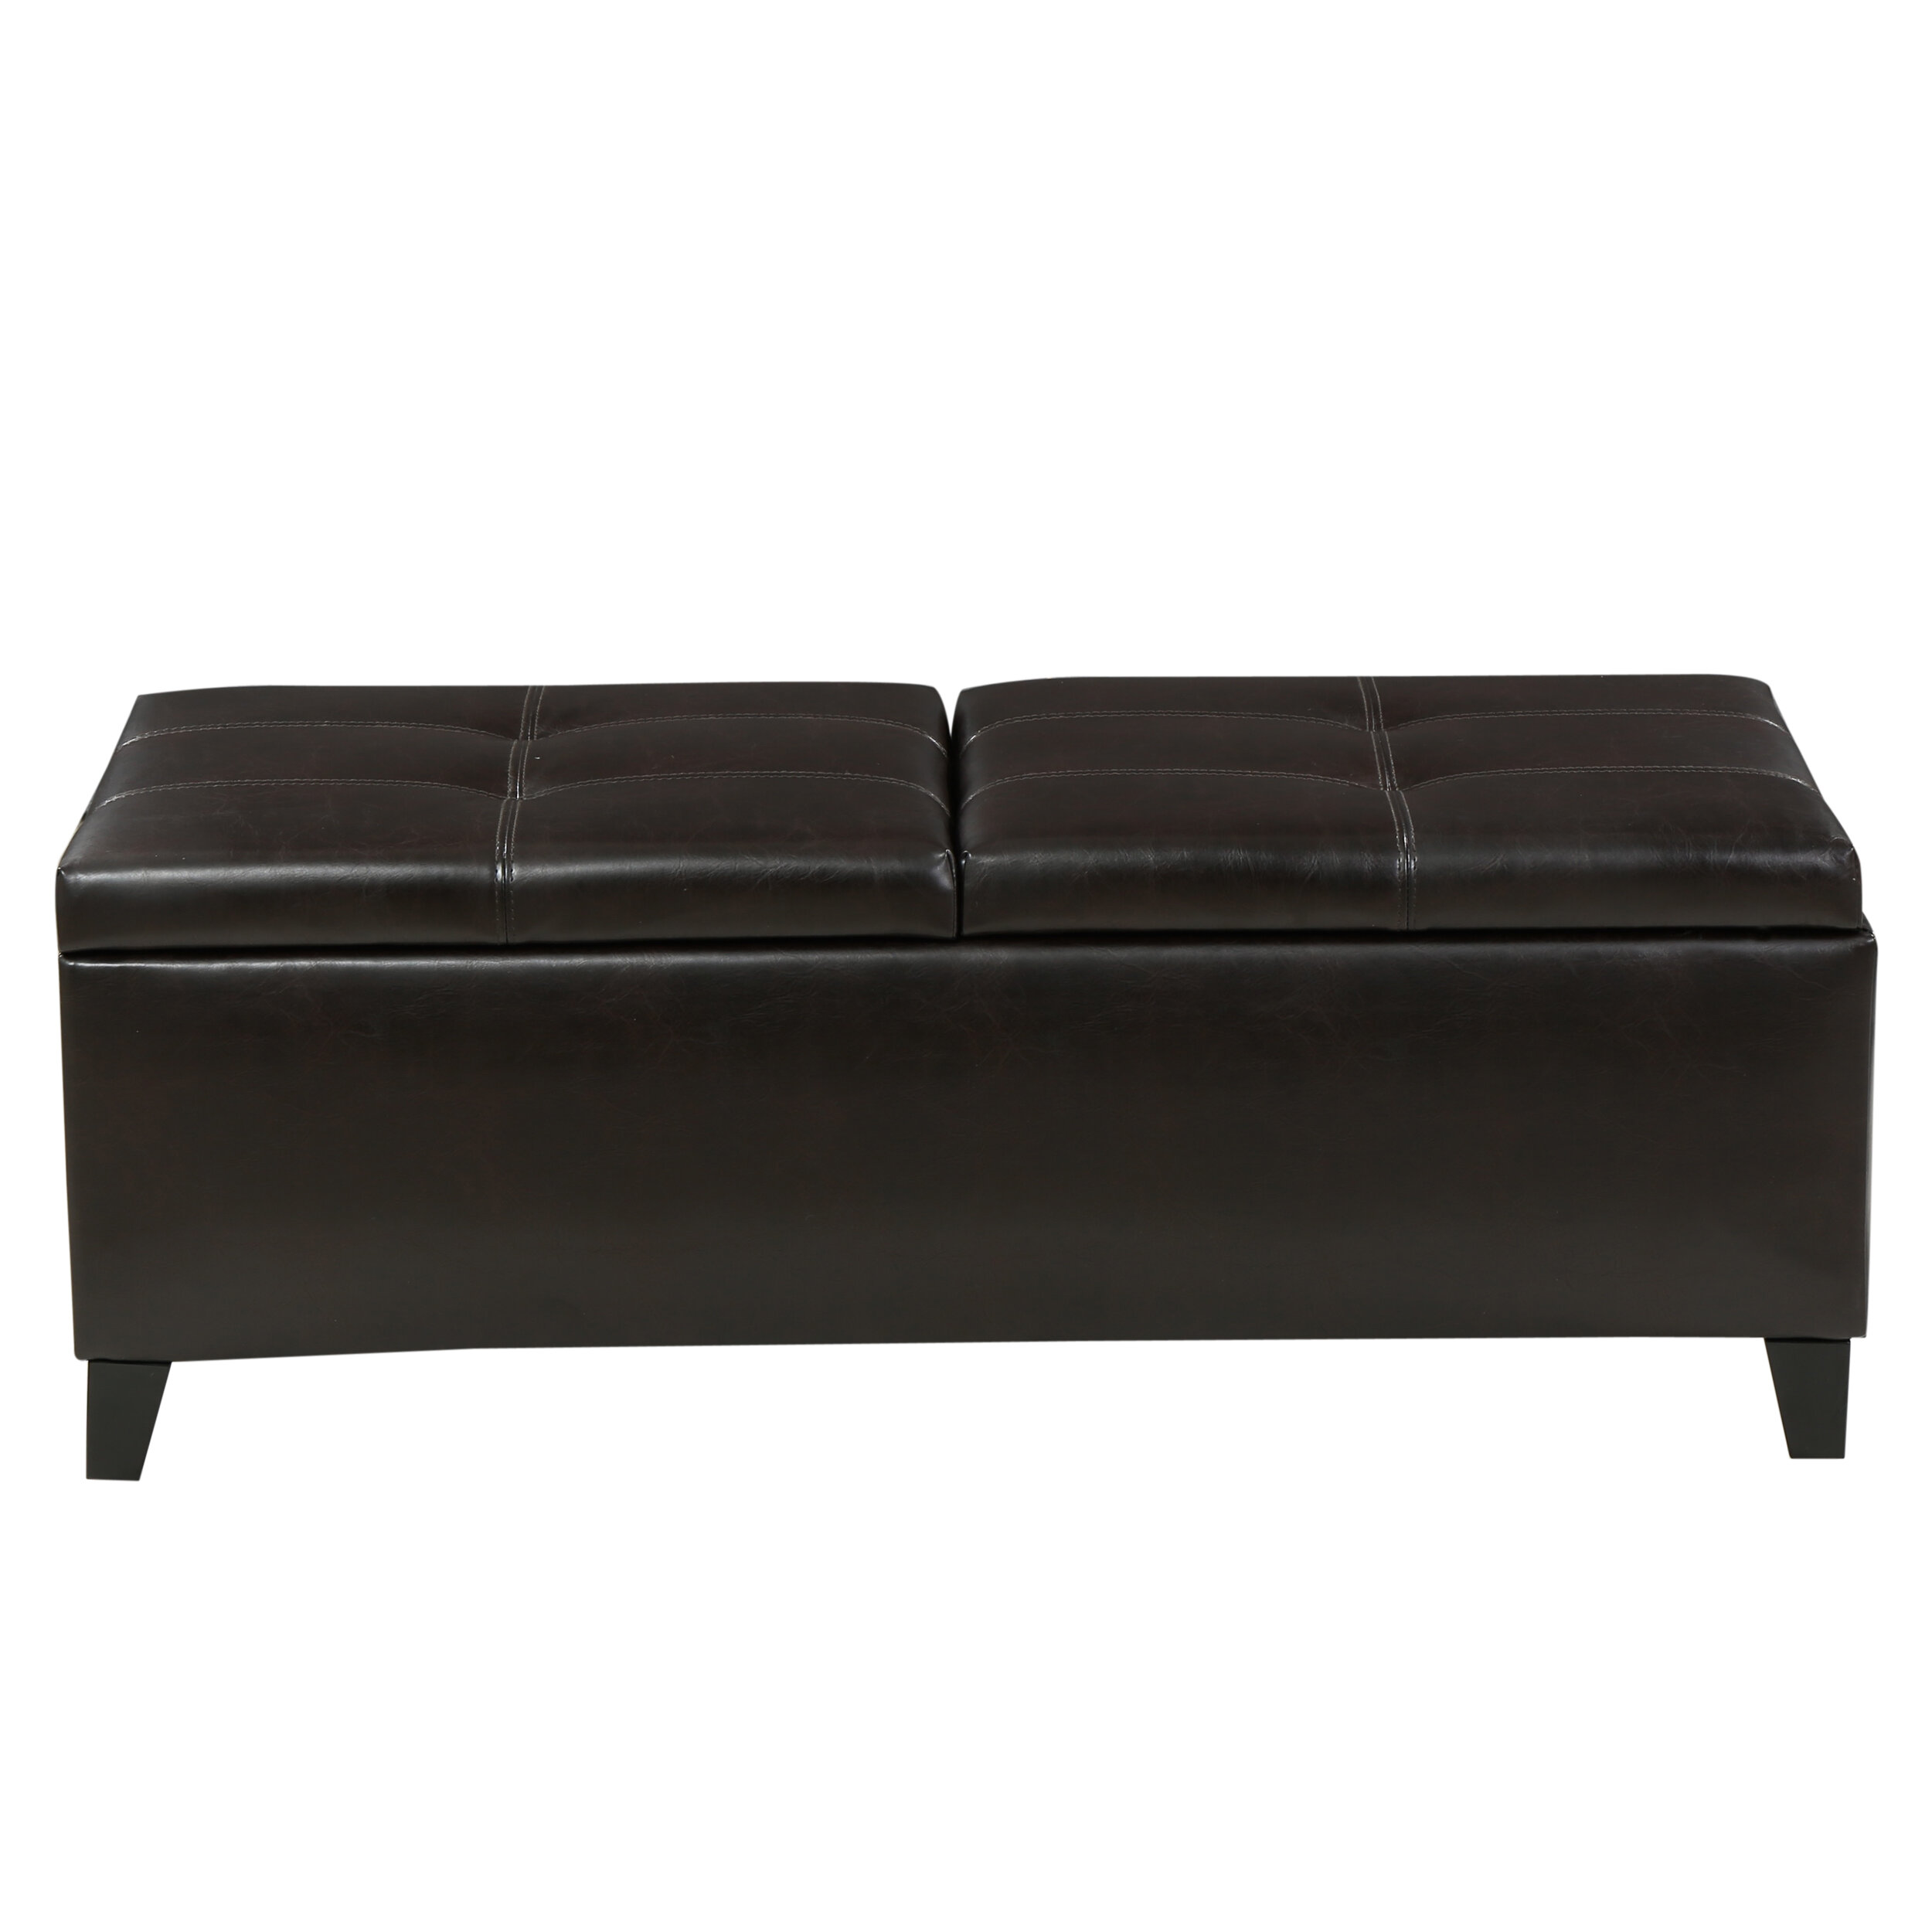 storage of seat black with grey me sofa ottoman full size large coffee leather photogiraffe bench